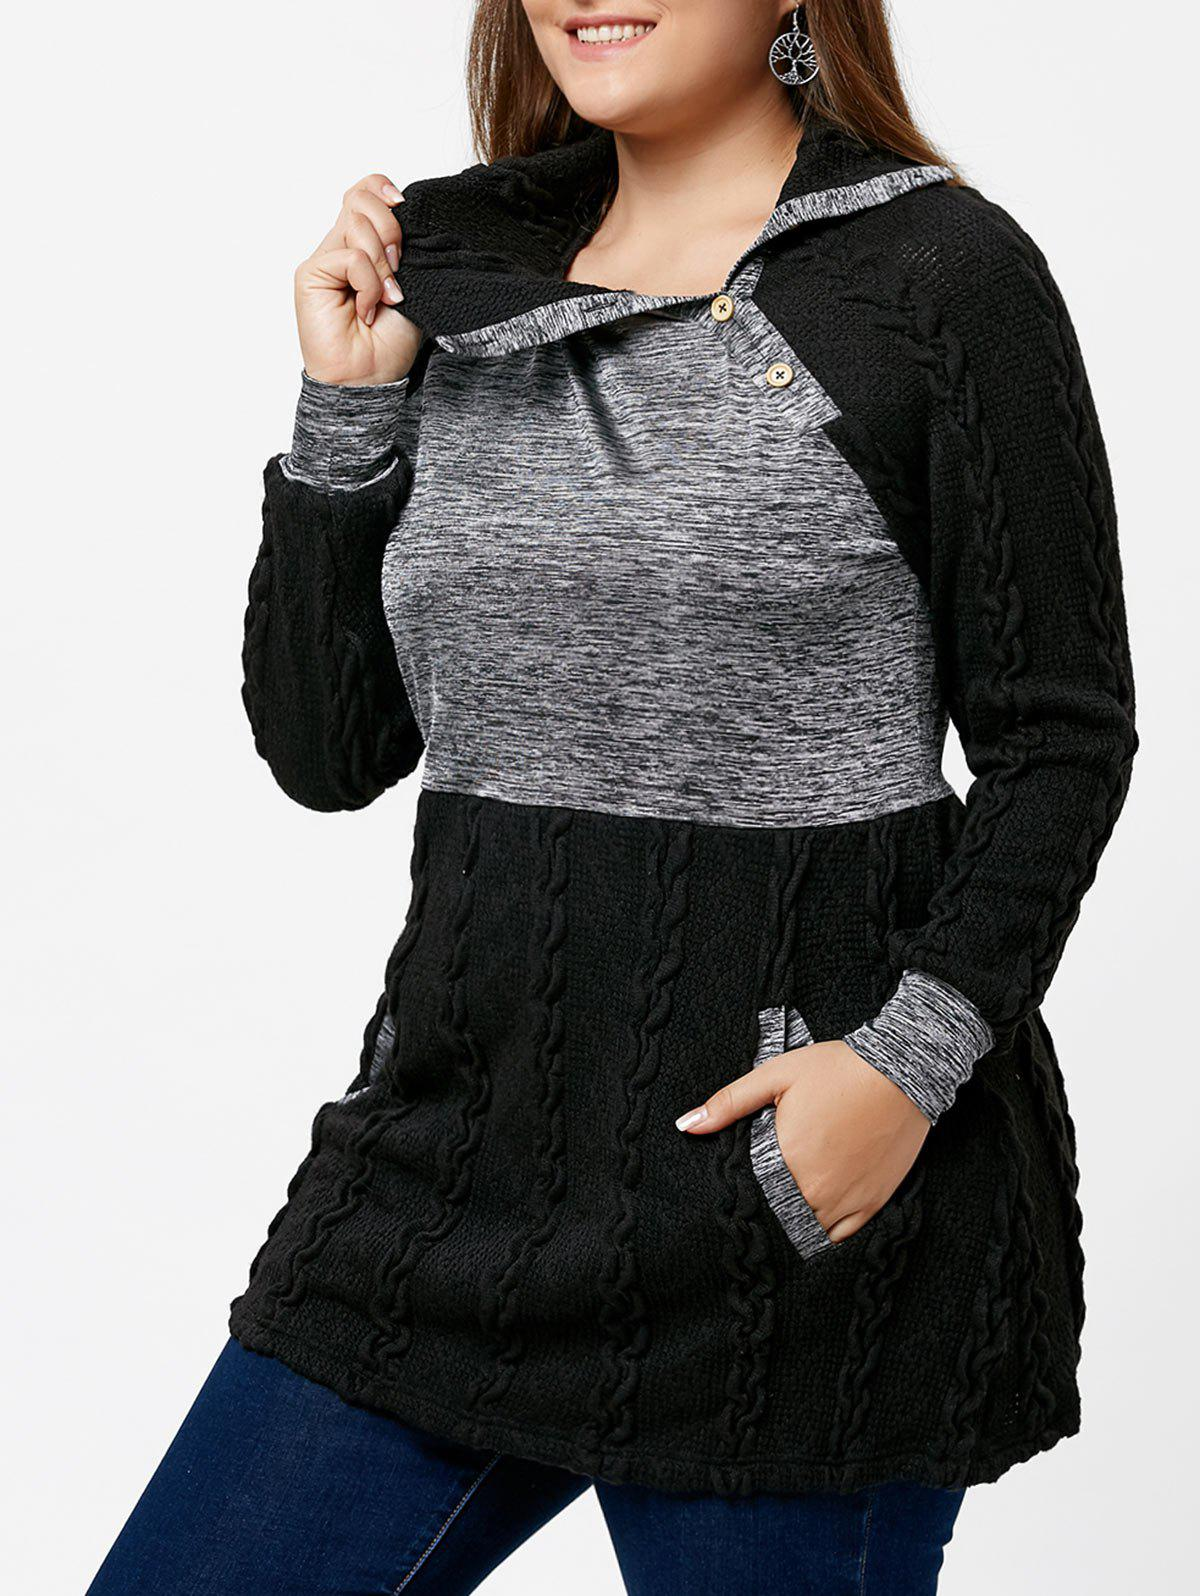 Plus Size Pullover Pockets Cable Knit SweaterWOMEN<br><br>Size: XL; Color: BLACK; Type: Pullovers; Material: Polyester,Spandex; Sleeve Length: Full; Collar: Turn-down Collar; Technics: Computer Knitted; Style: Casual; Season: Fall,Spring,Winter; Pattern Type: Others; Weight: 0.5000kg; Package Contents: 1 x Sweater;